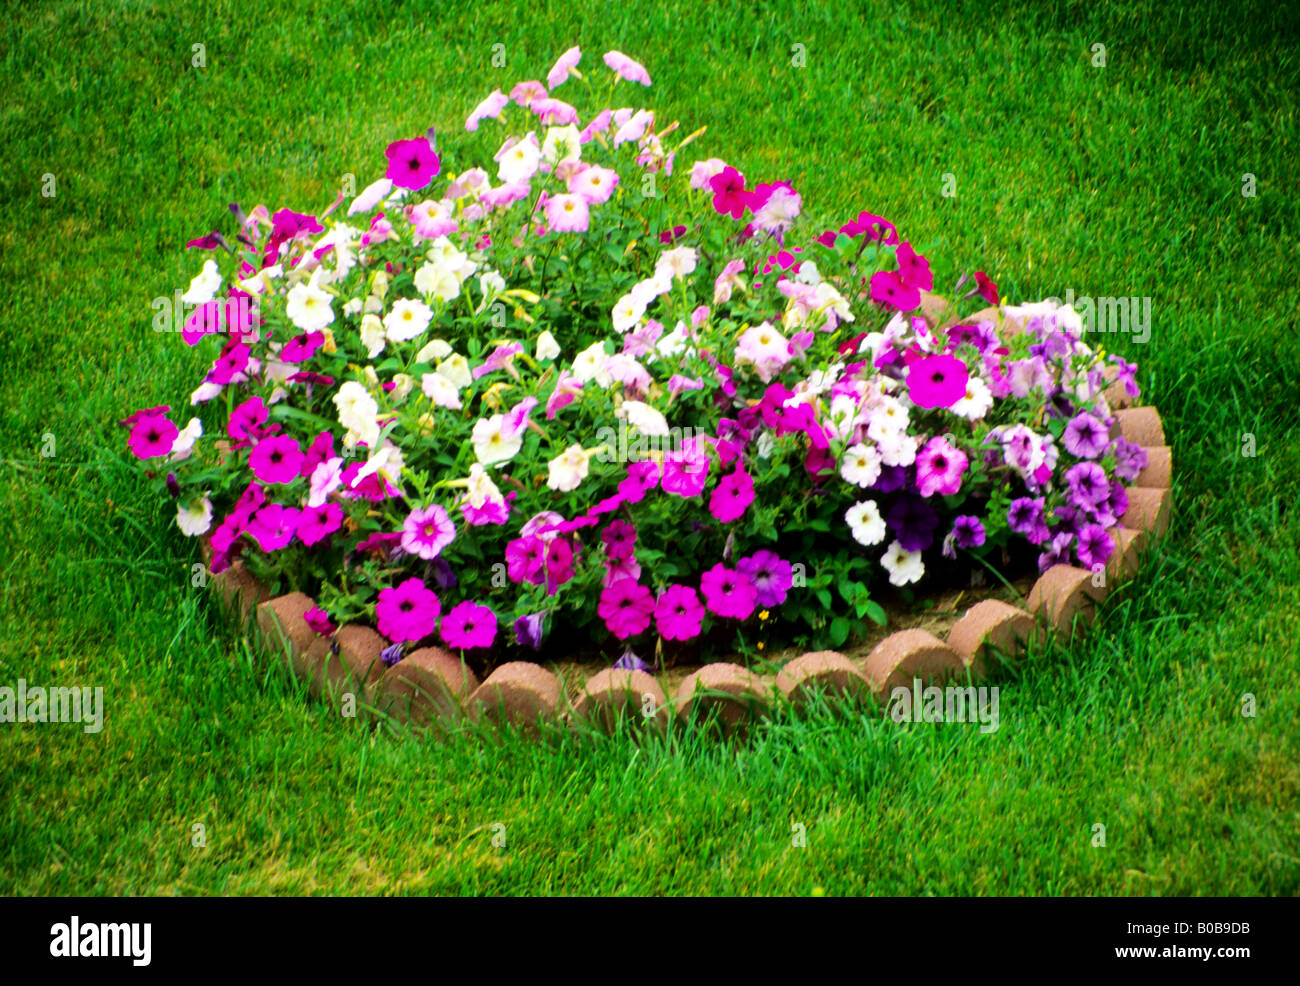 Delicieux Patch Of Petunias Flowers On Green Loan Garden Patch Grow